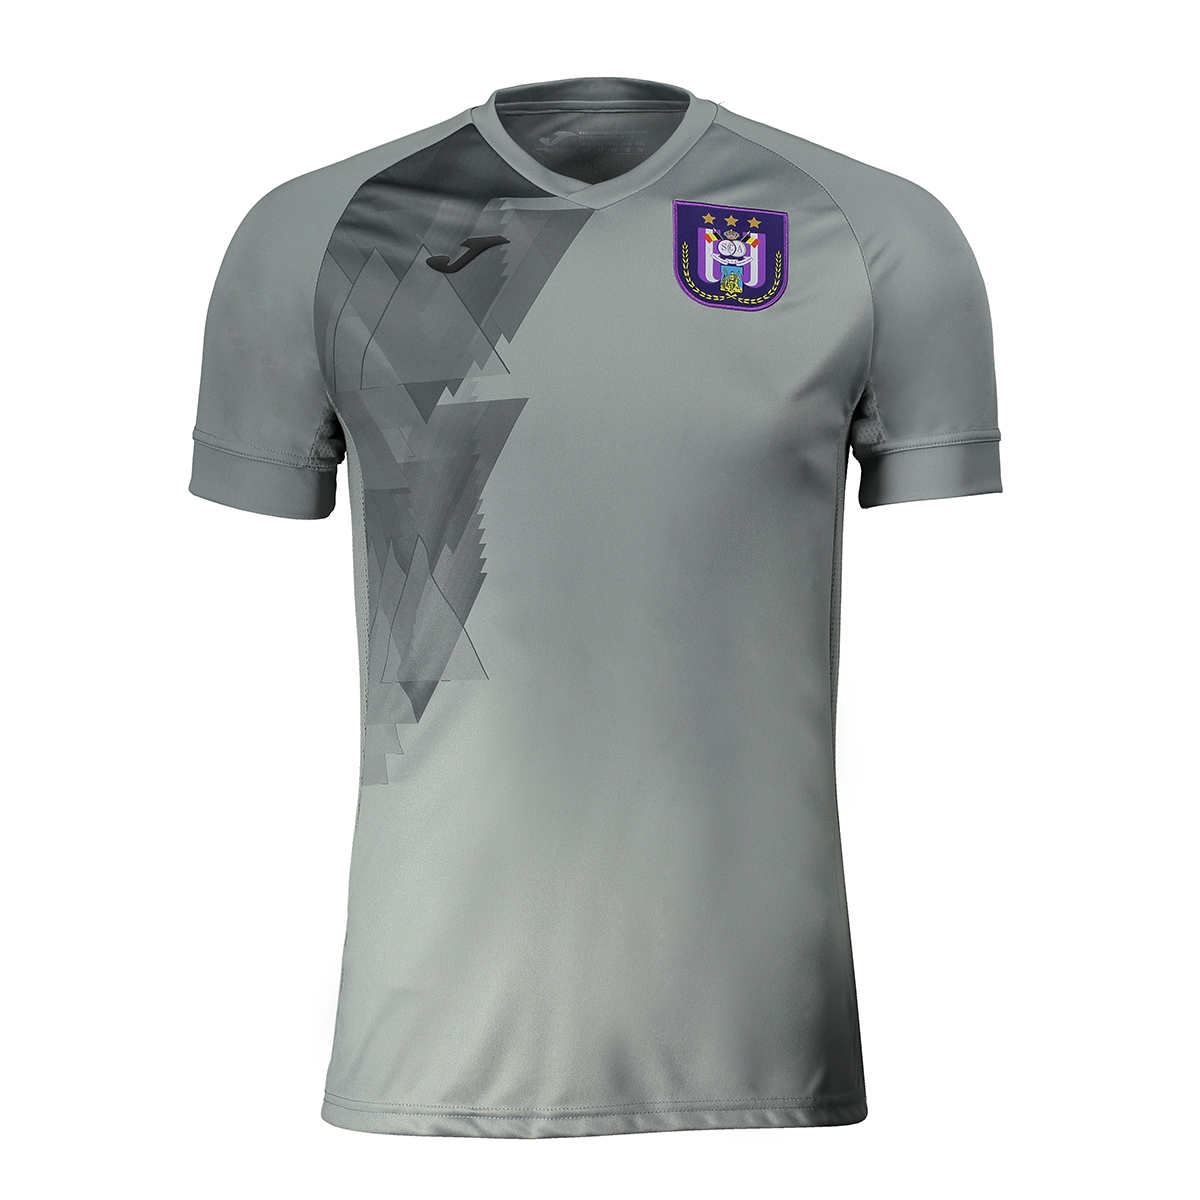 RSCA Training Shirt 2020/2021 - Grijs